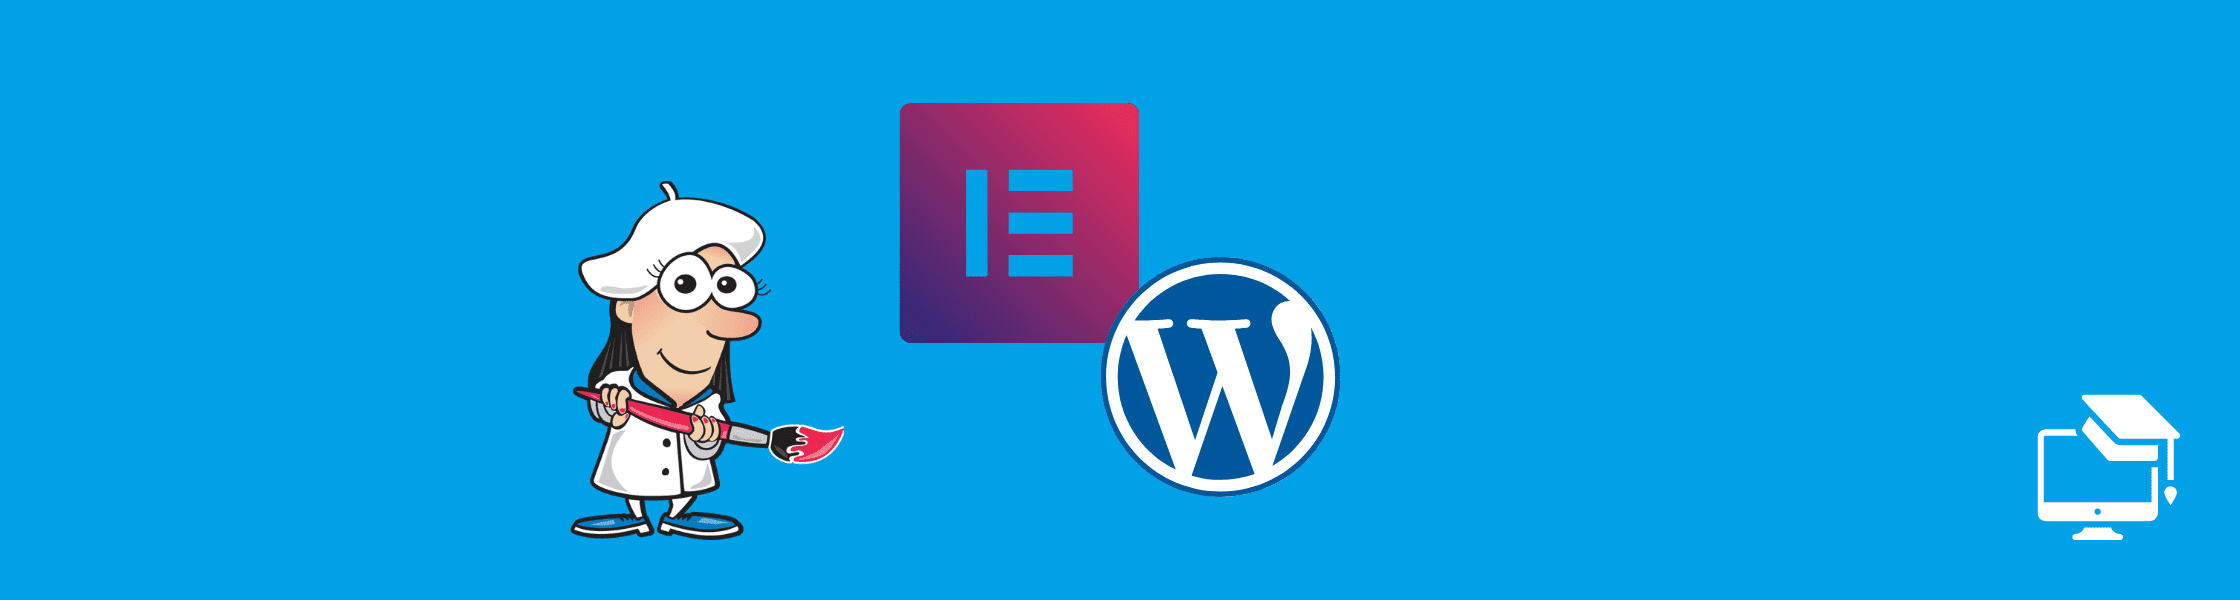 How to Install Elementor Pro - WordPress Website